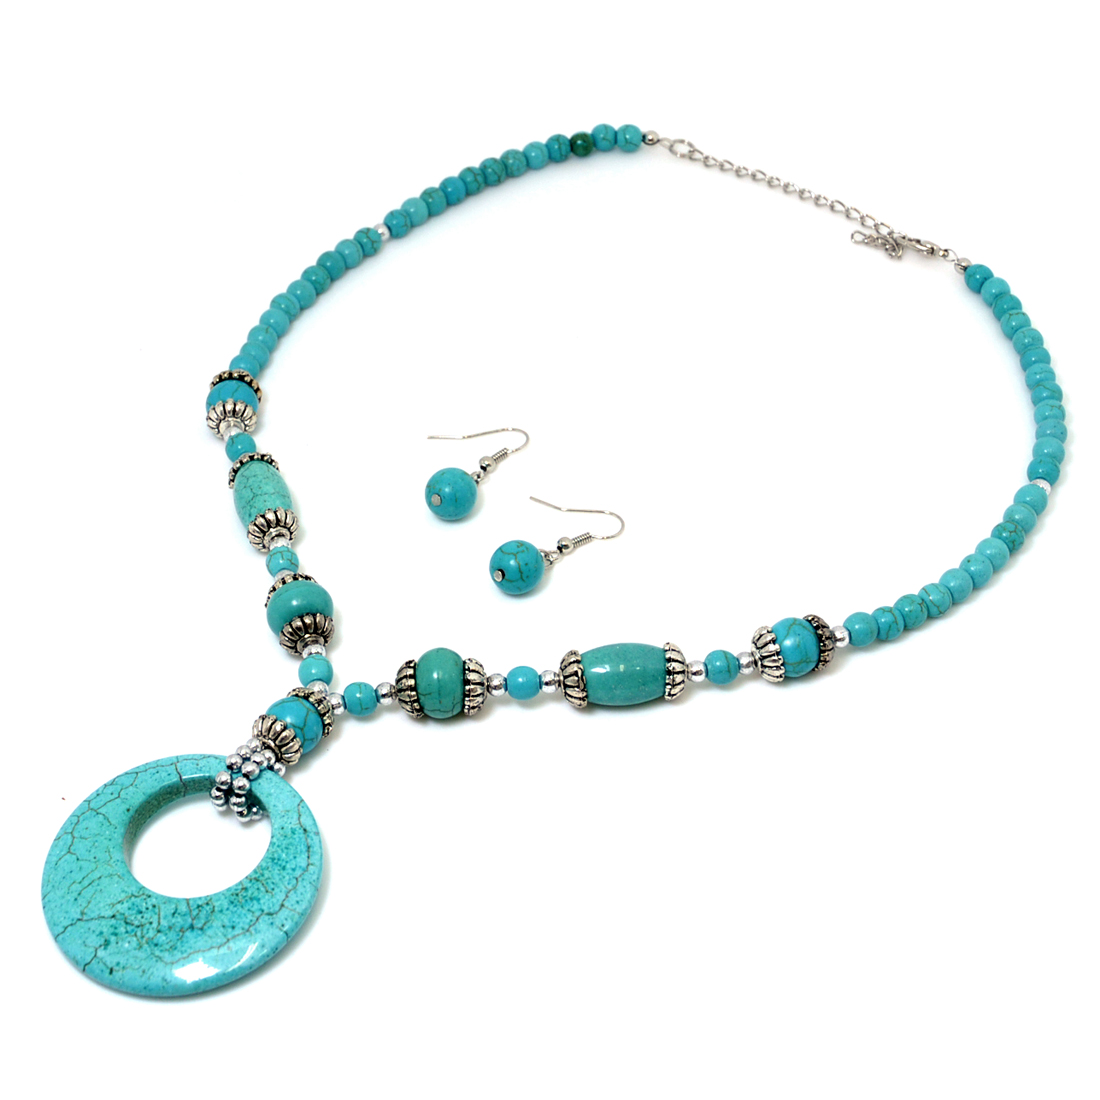 Turquoise Disc Pendant with Silver-Tone Accents and Earrings